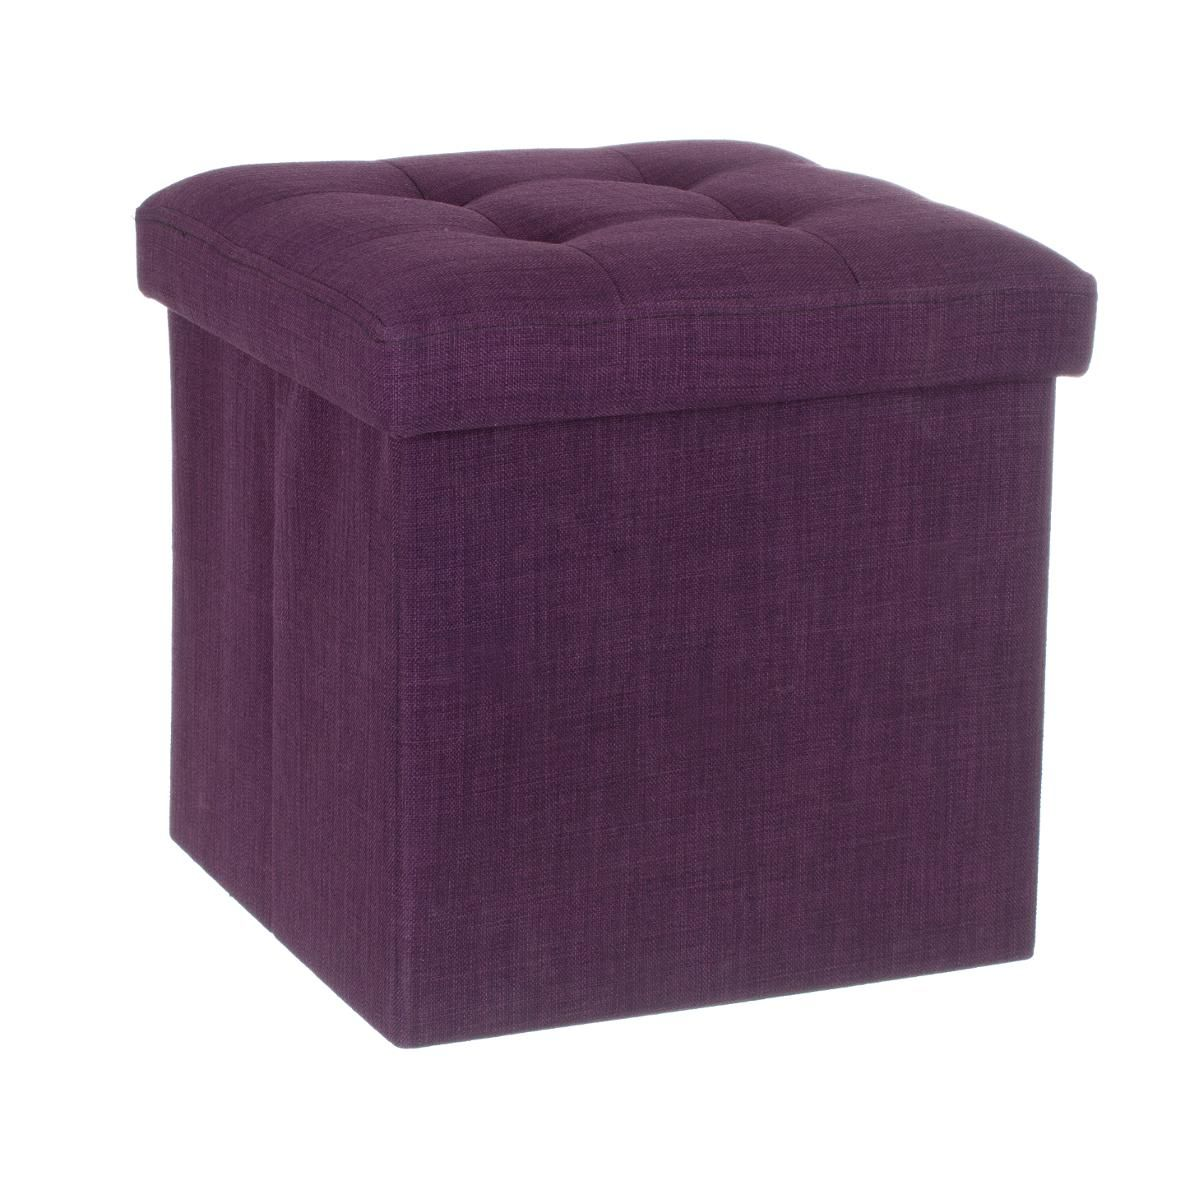 pouf de rangement lysandre violet coussin de sol et pouf. Black Bedroom Furniture Sets. Home Design Ideas